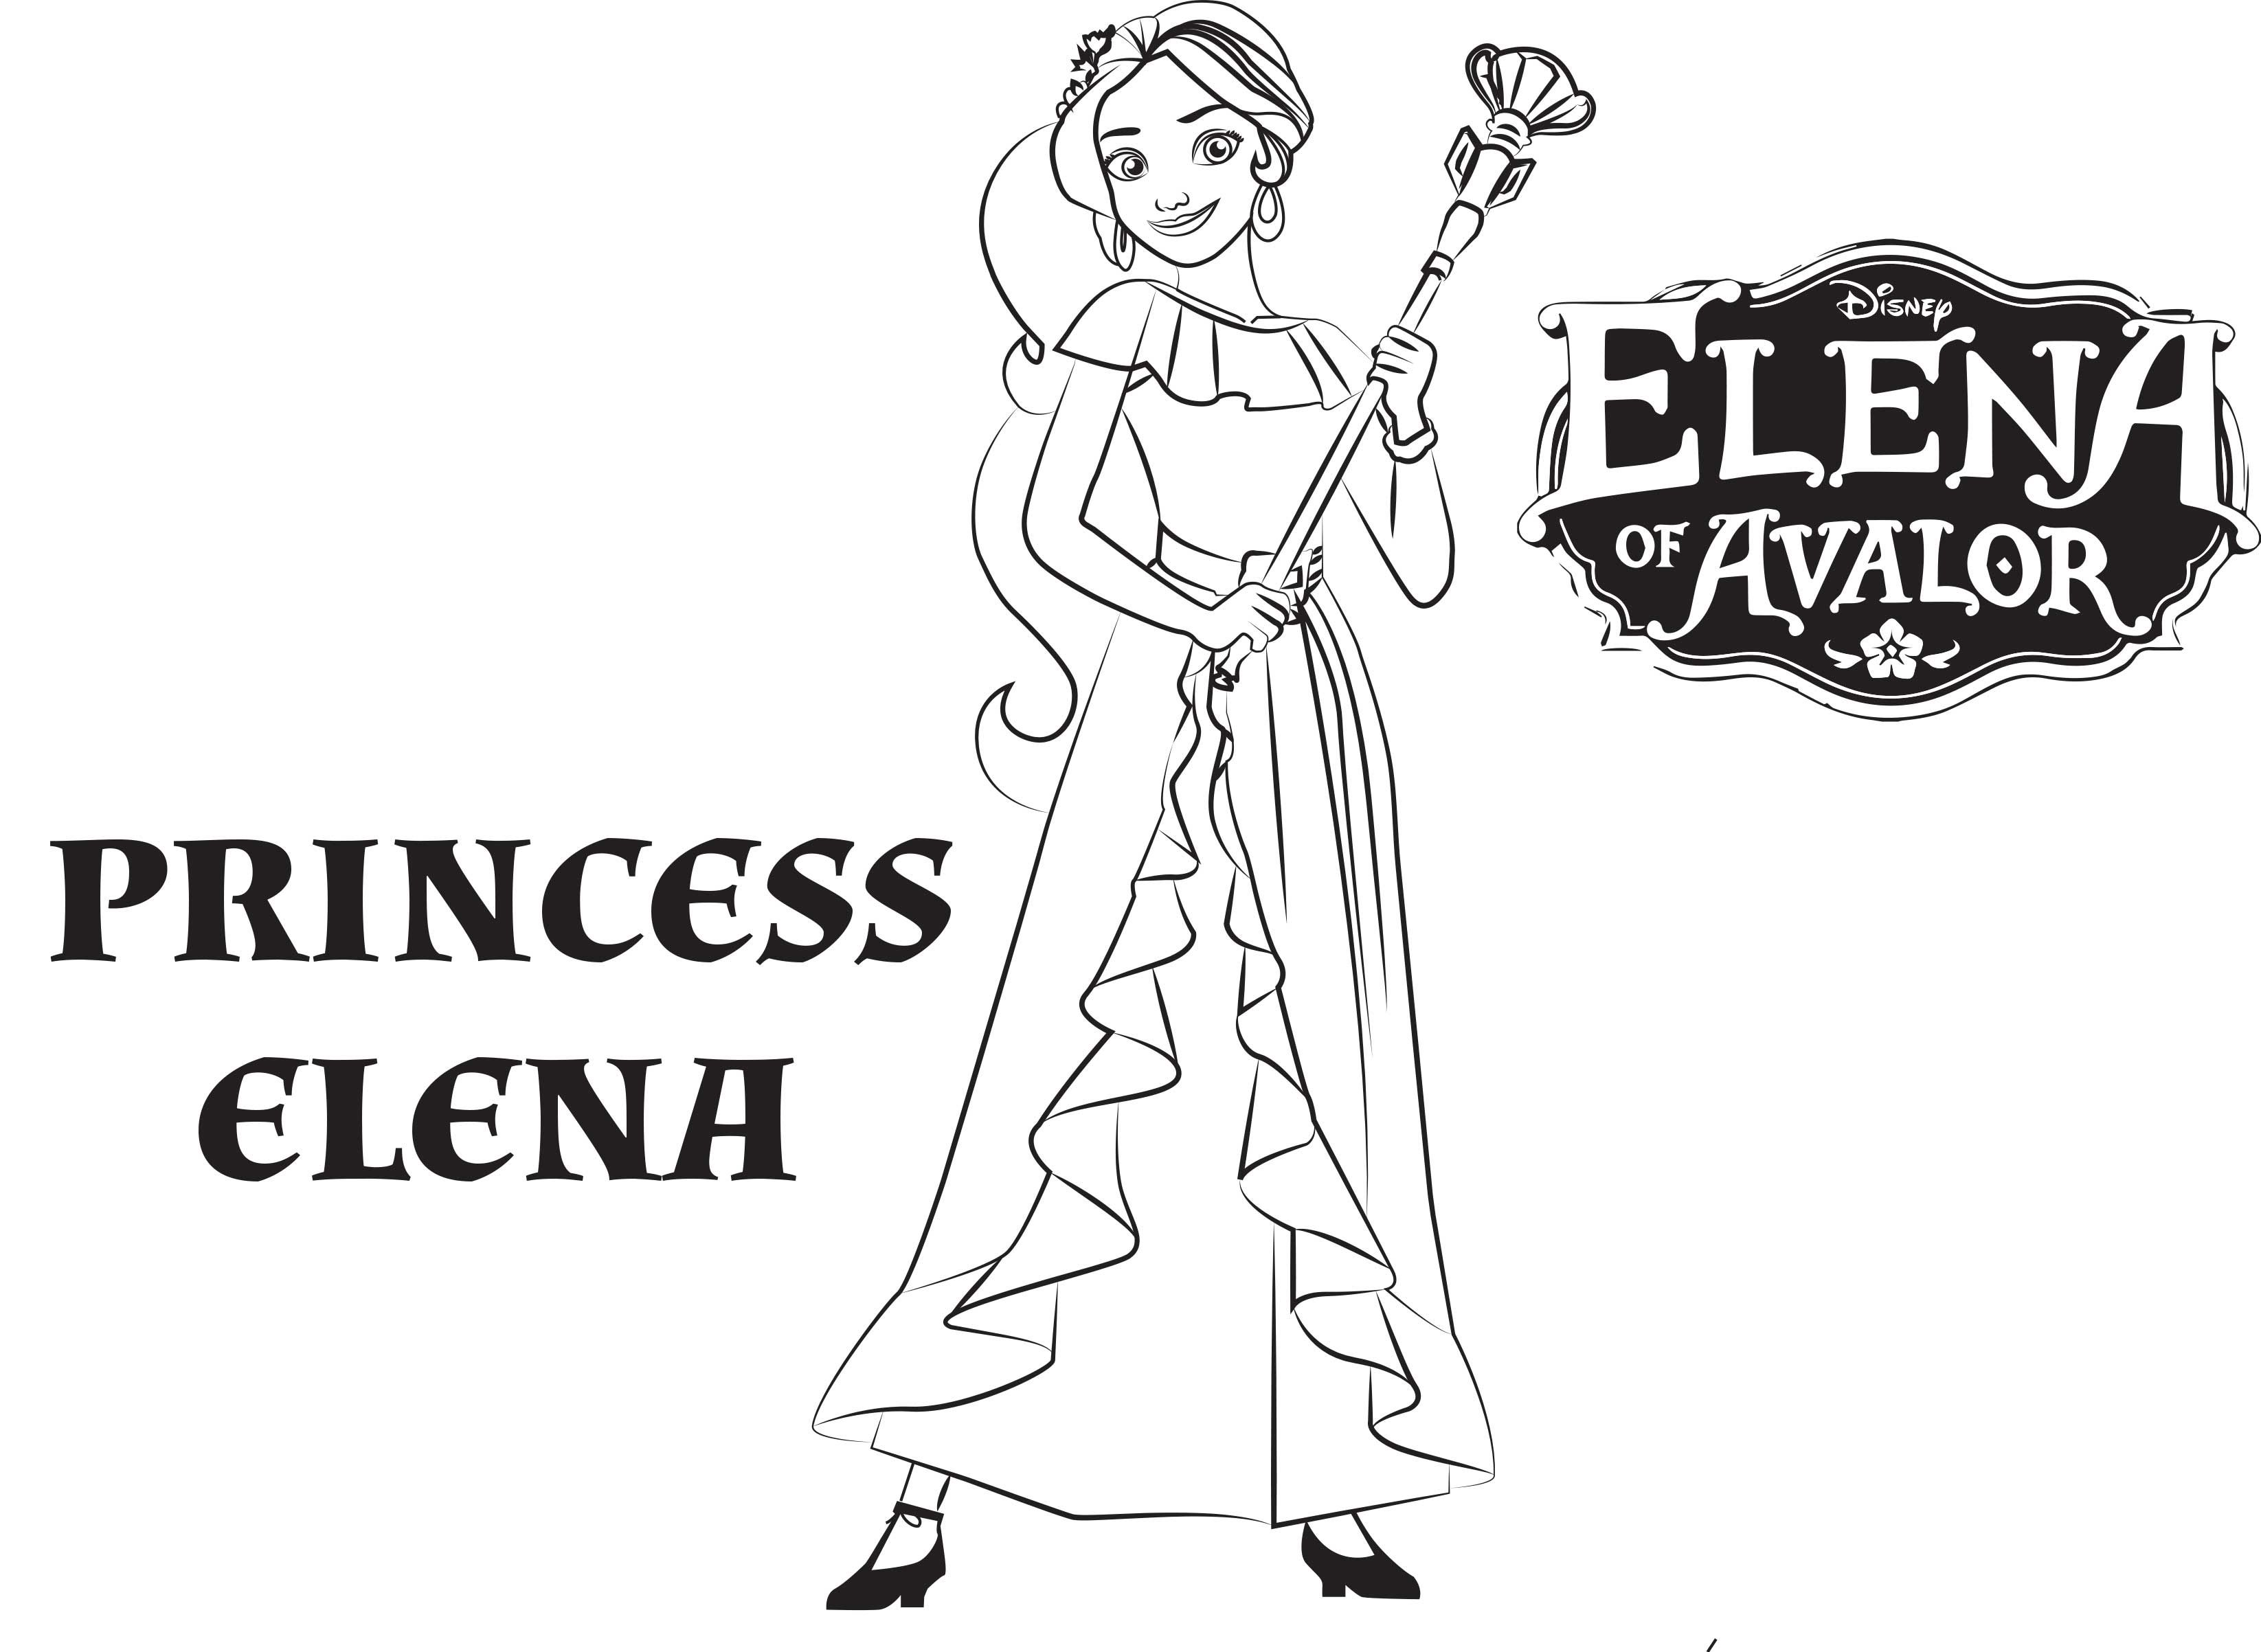 Elena Printable Coloring Pages Of Avalor Princess Coloring Pages Disney Coloring Pages Princess Elena